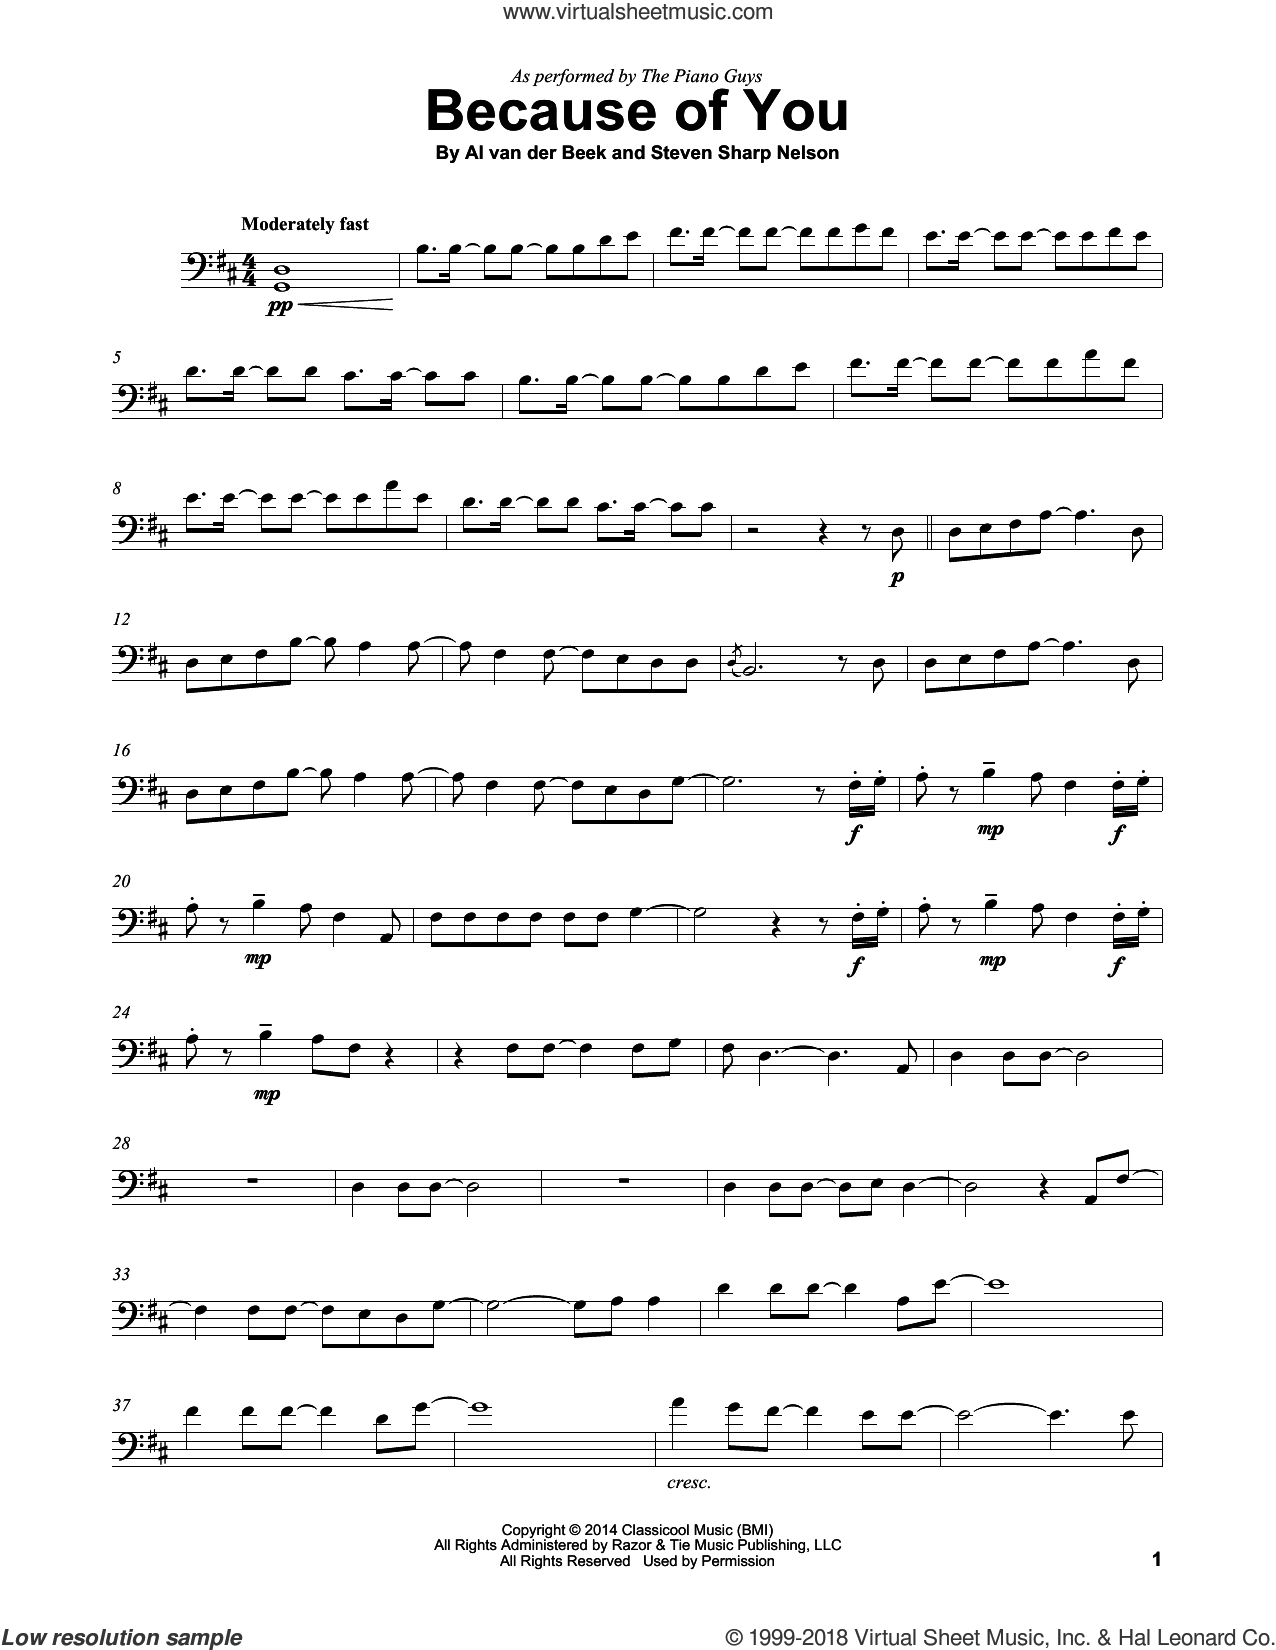 Because Of You sheet music for cello solo by The Piano Guys, Al van der Beek and Steven Sharp Nelson, classical score, intermediate